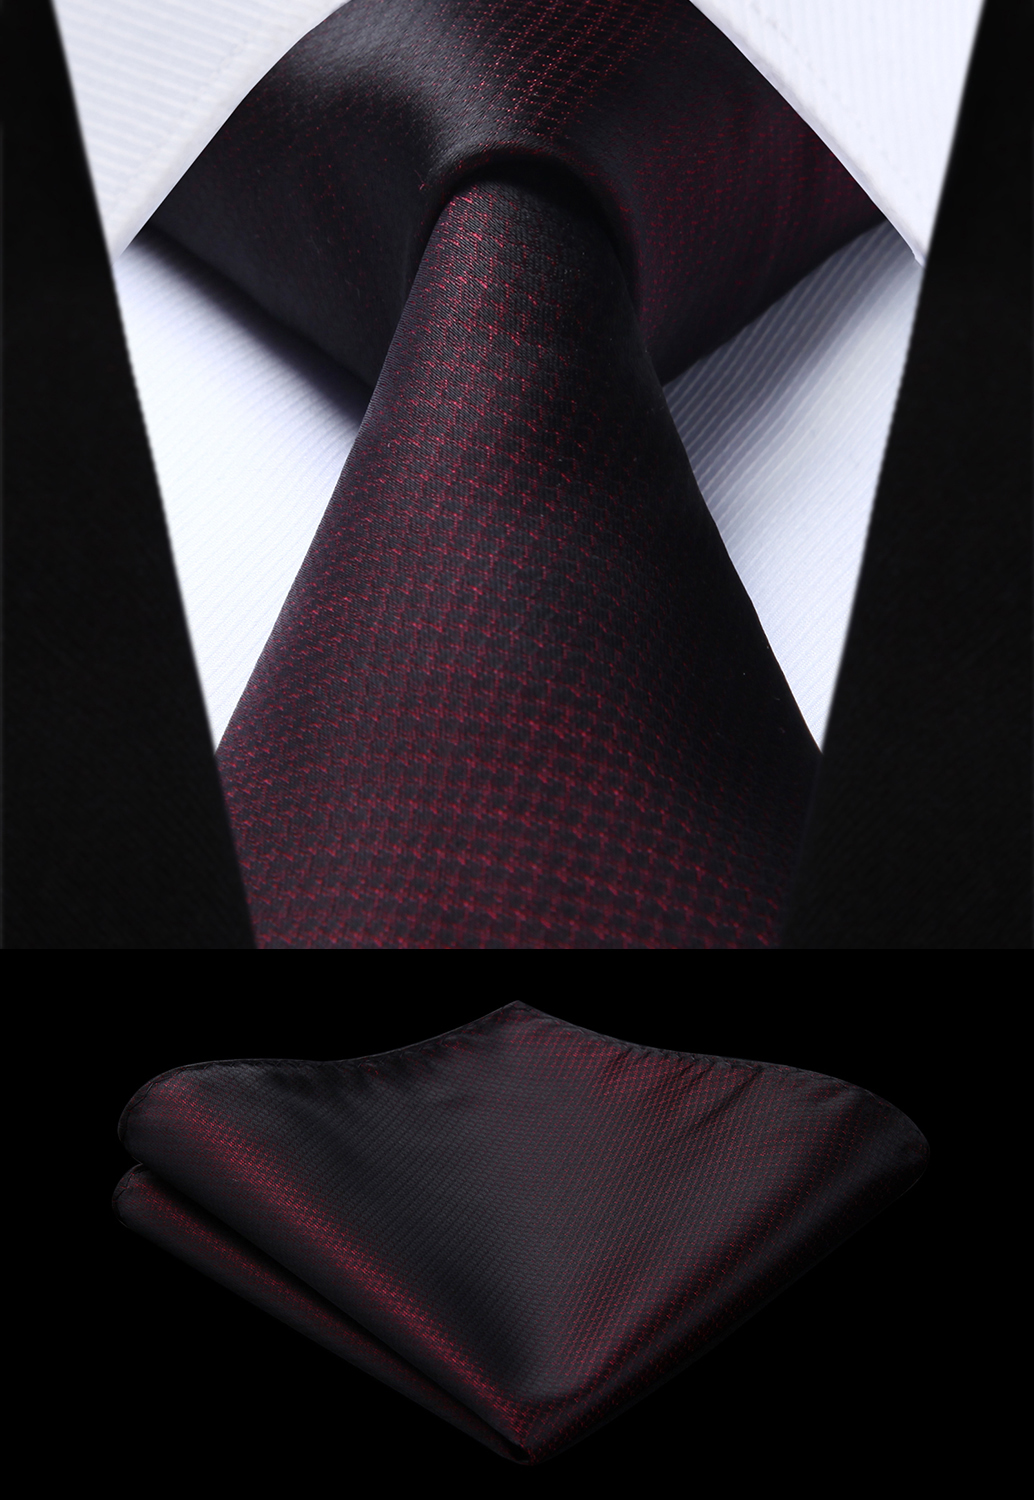 Party Wedding Classic Fashion Pocket Square Tie Woven Men Burgundy Tie Geometric Necktie Handkerchief Set#TG807U8S